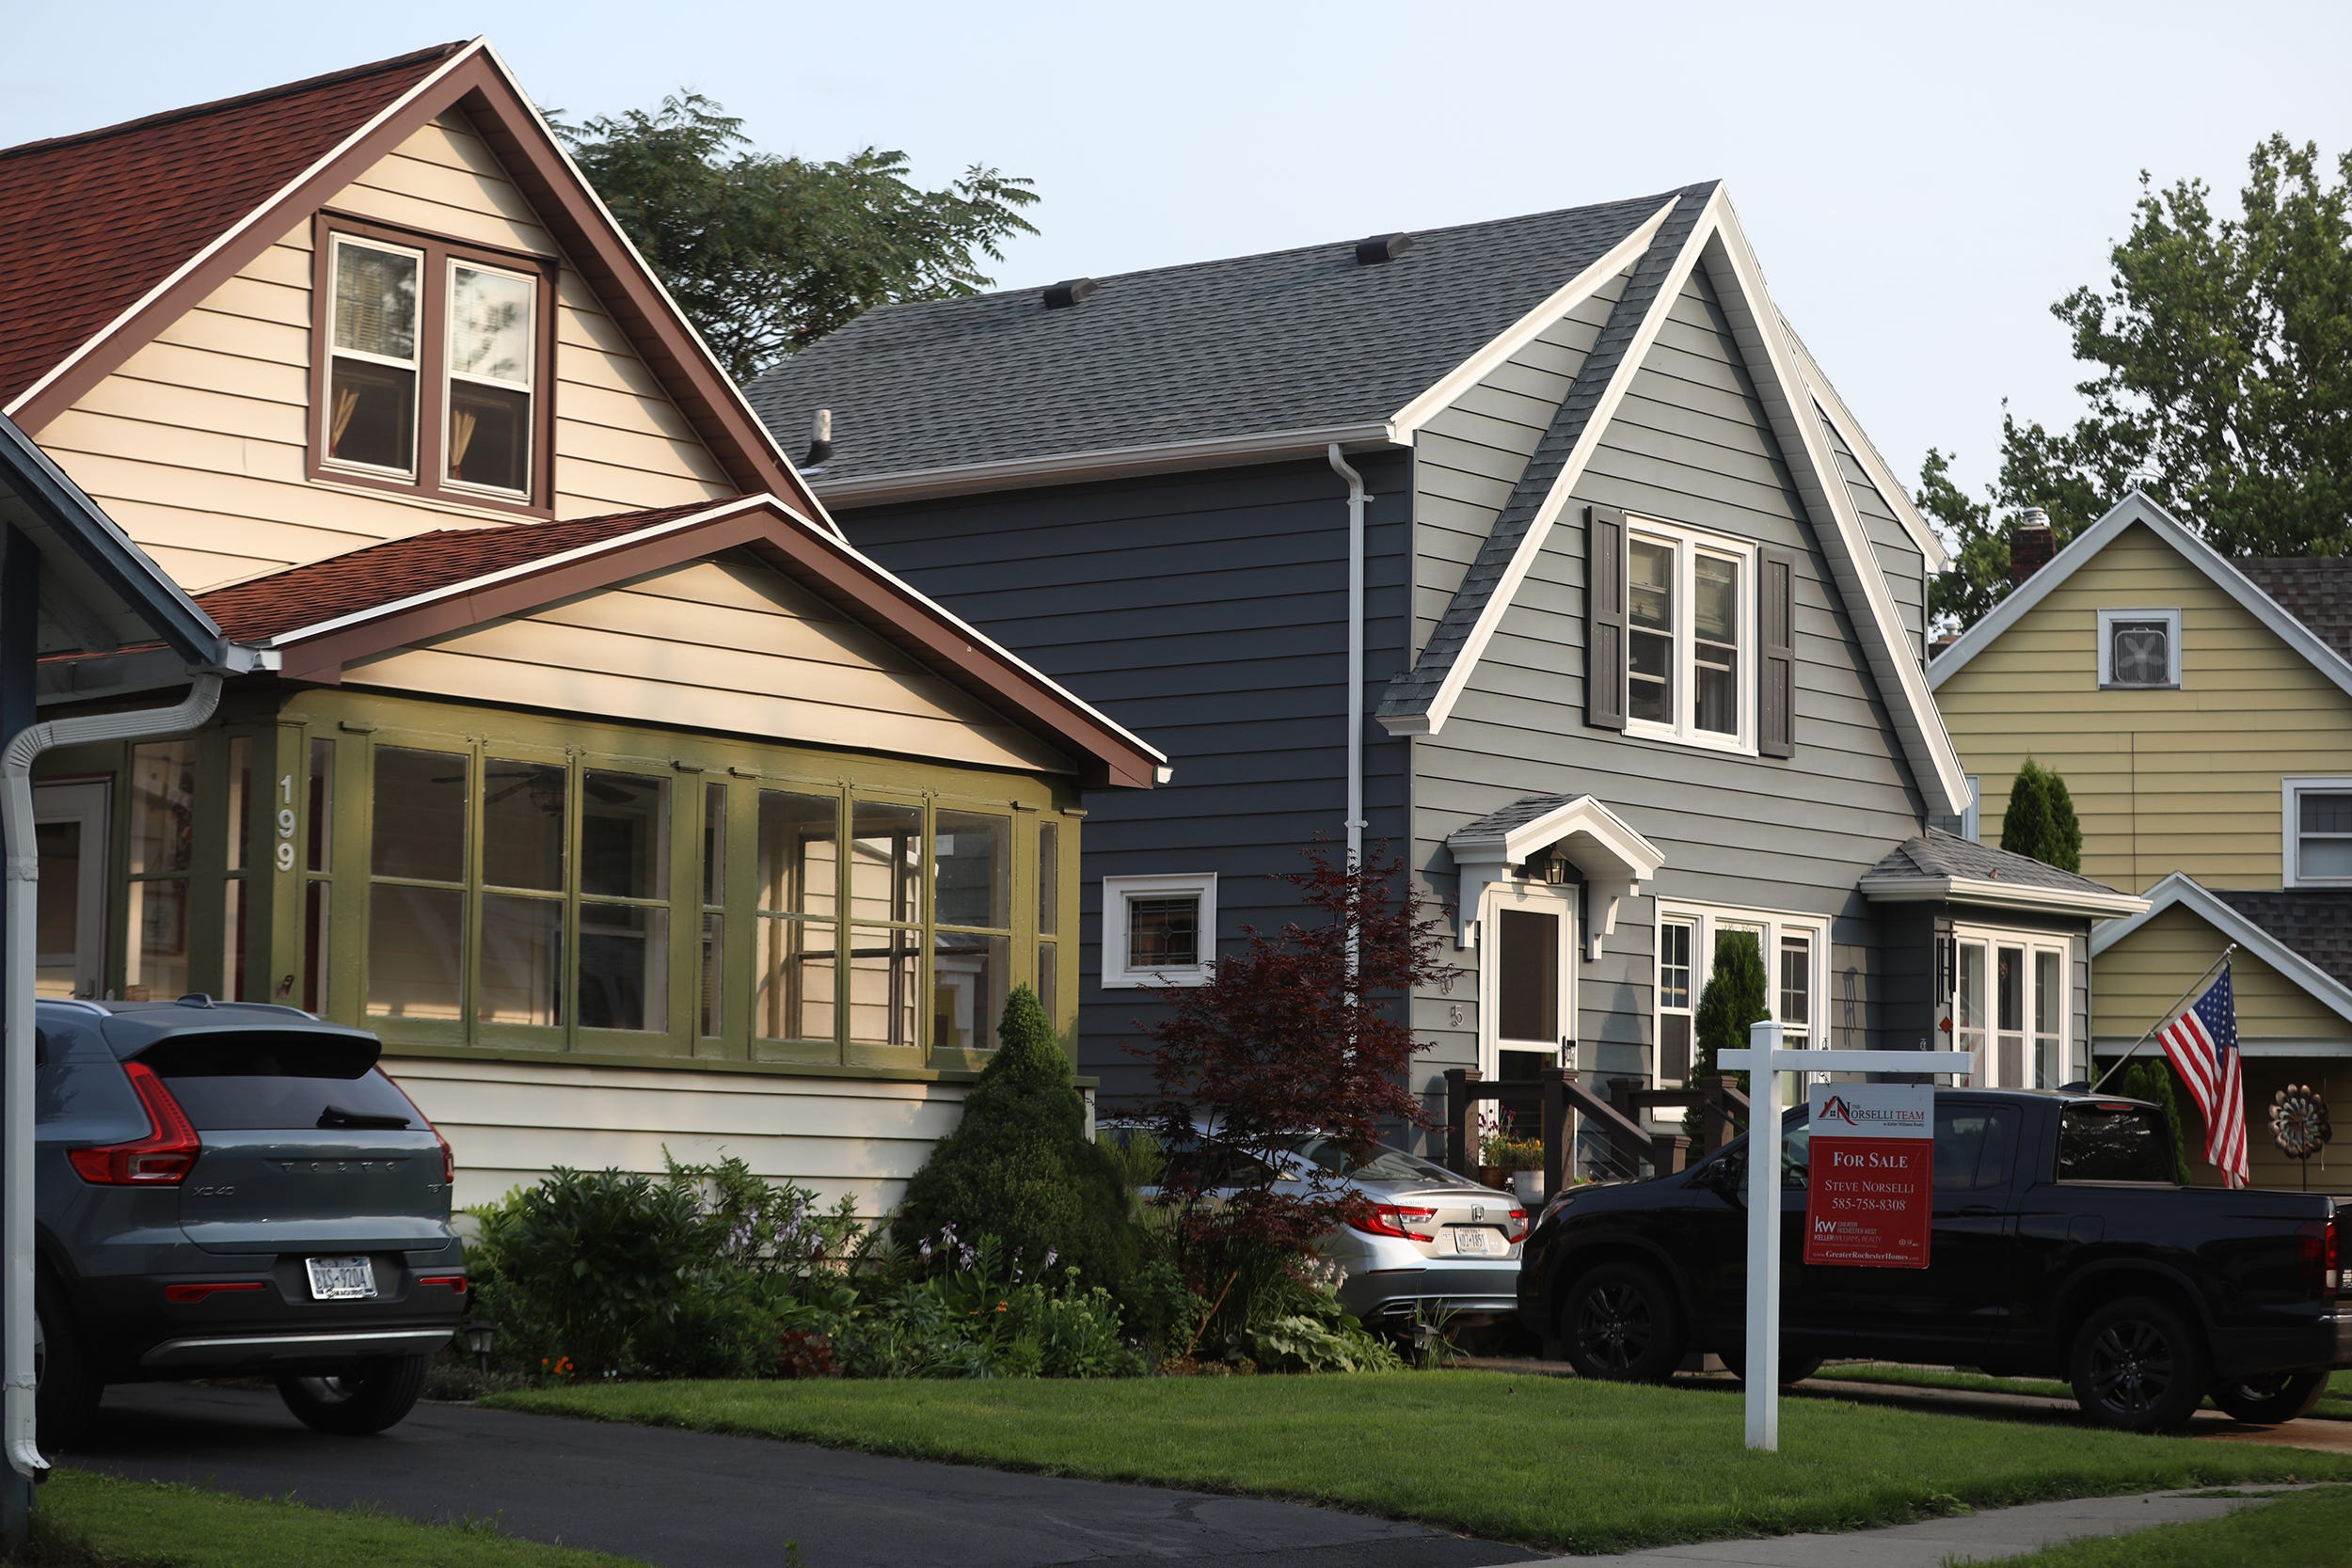 lohud.com - Mario Marroquin, The Journal News - New York housing market: Sale prices way up, inventory way down, data shows